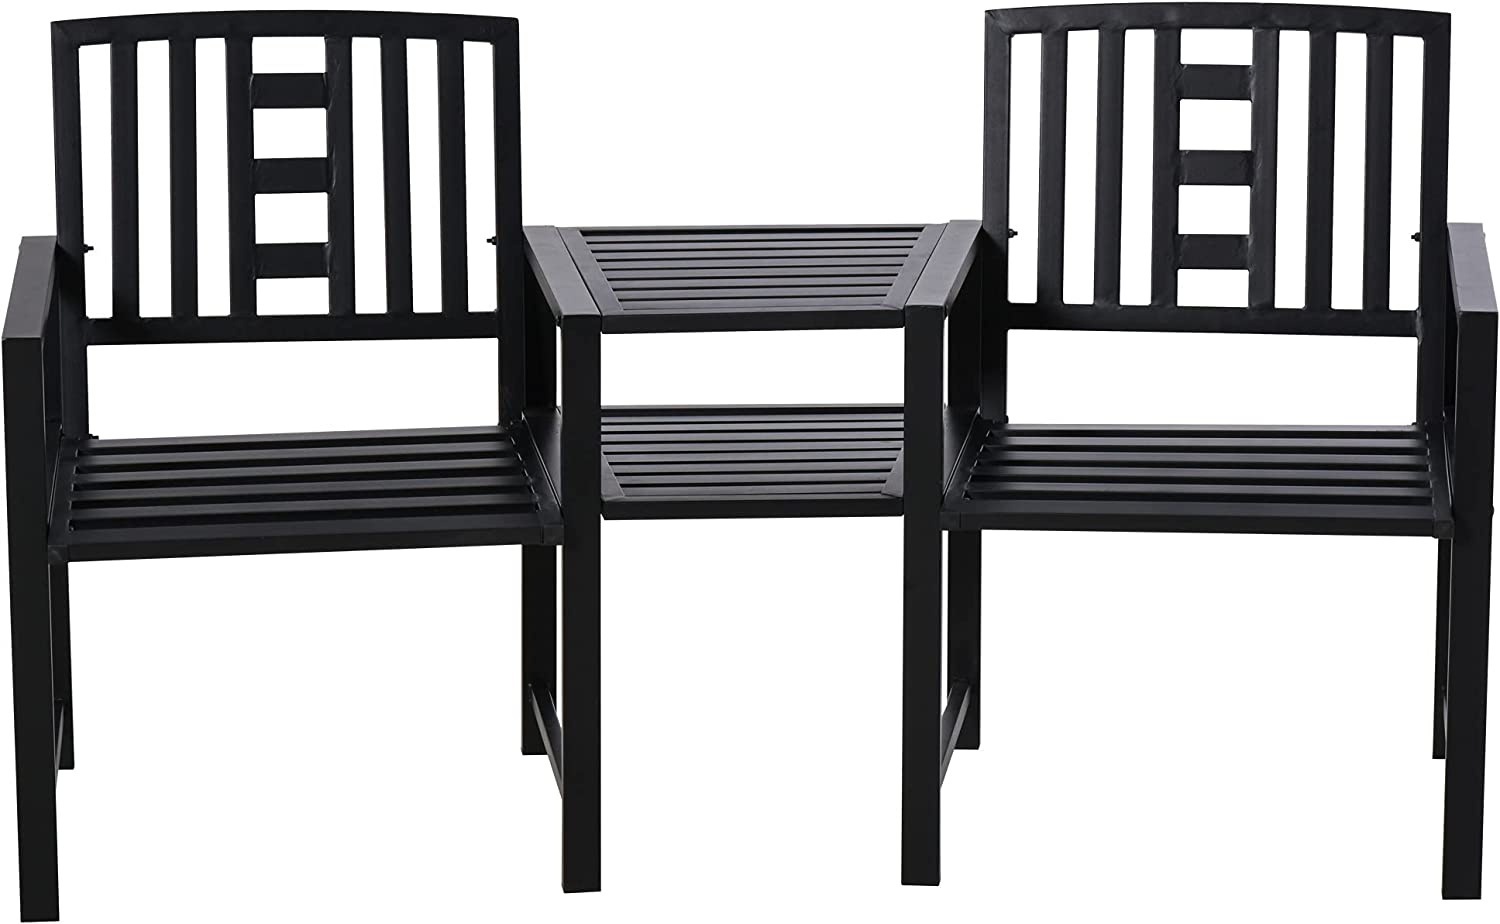 Outsunny Patio Tete-a-Tete Chair 2 Seat Bench Middle Coffee Table for Outdoors Decorative Slatted Design Steel Frame for Garden Yard